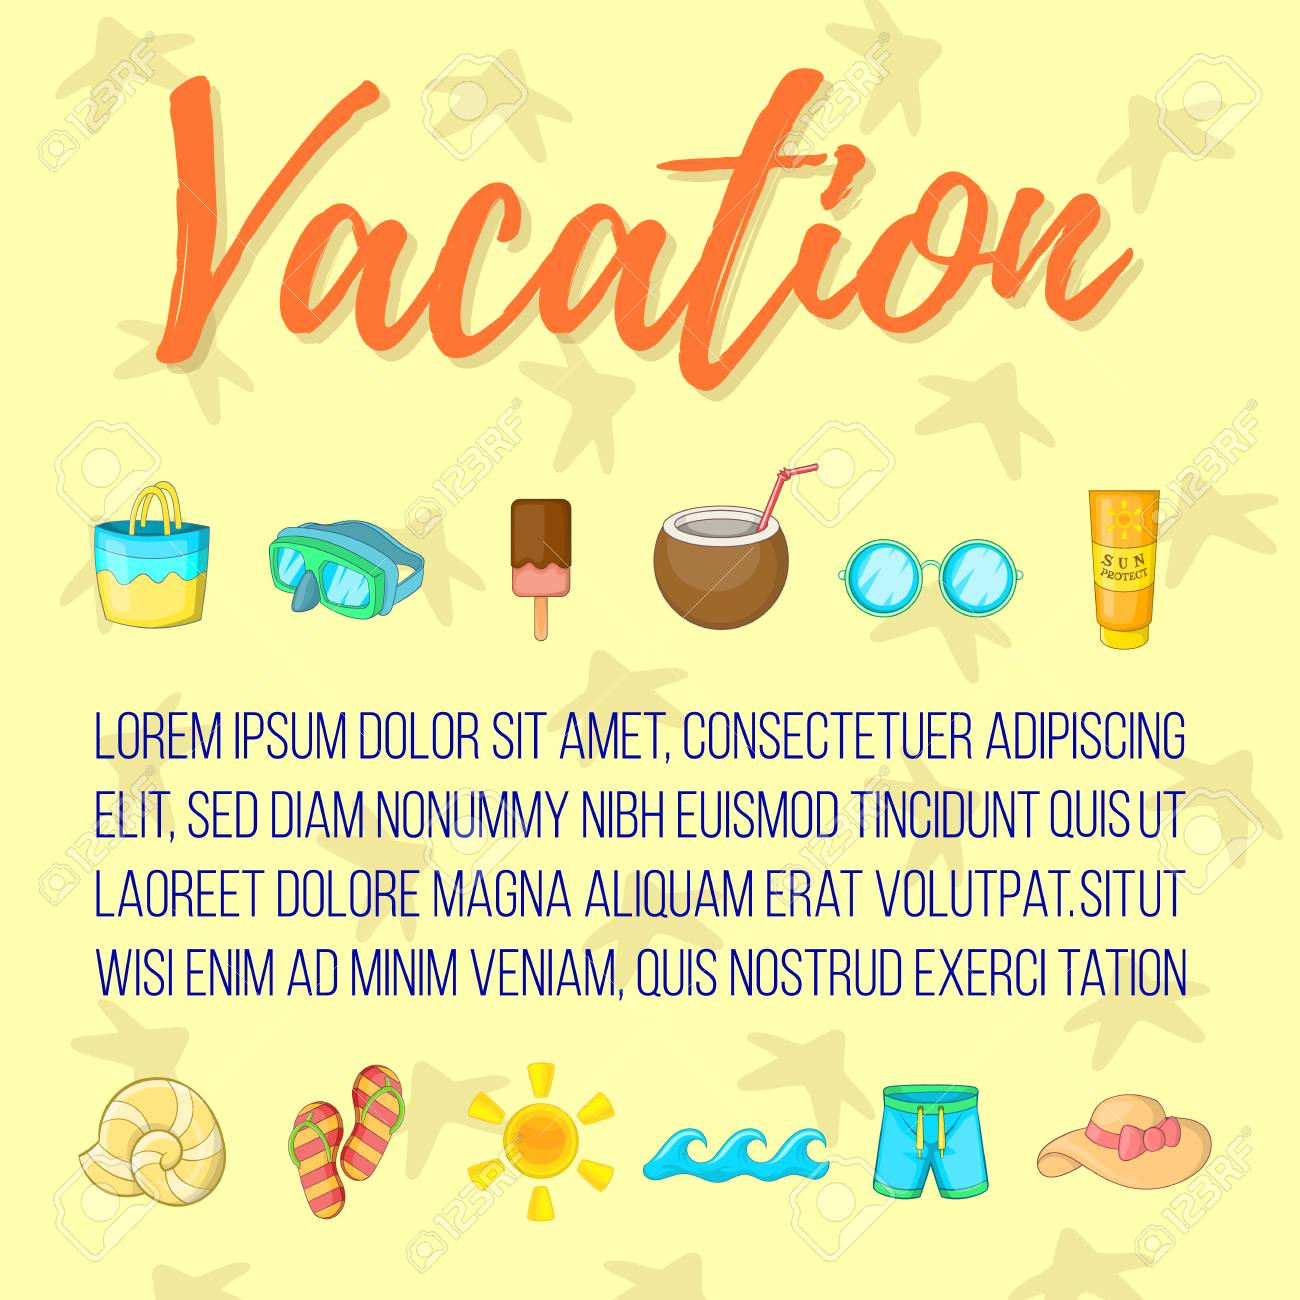 Vacation Postcard Background Concept Cartoon Postcard Of Vacation Royalty Free Cliparts Vectors And Stock Illustration Image 112300401